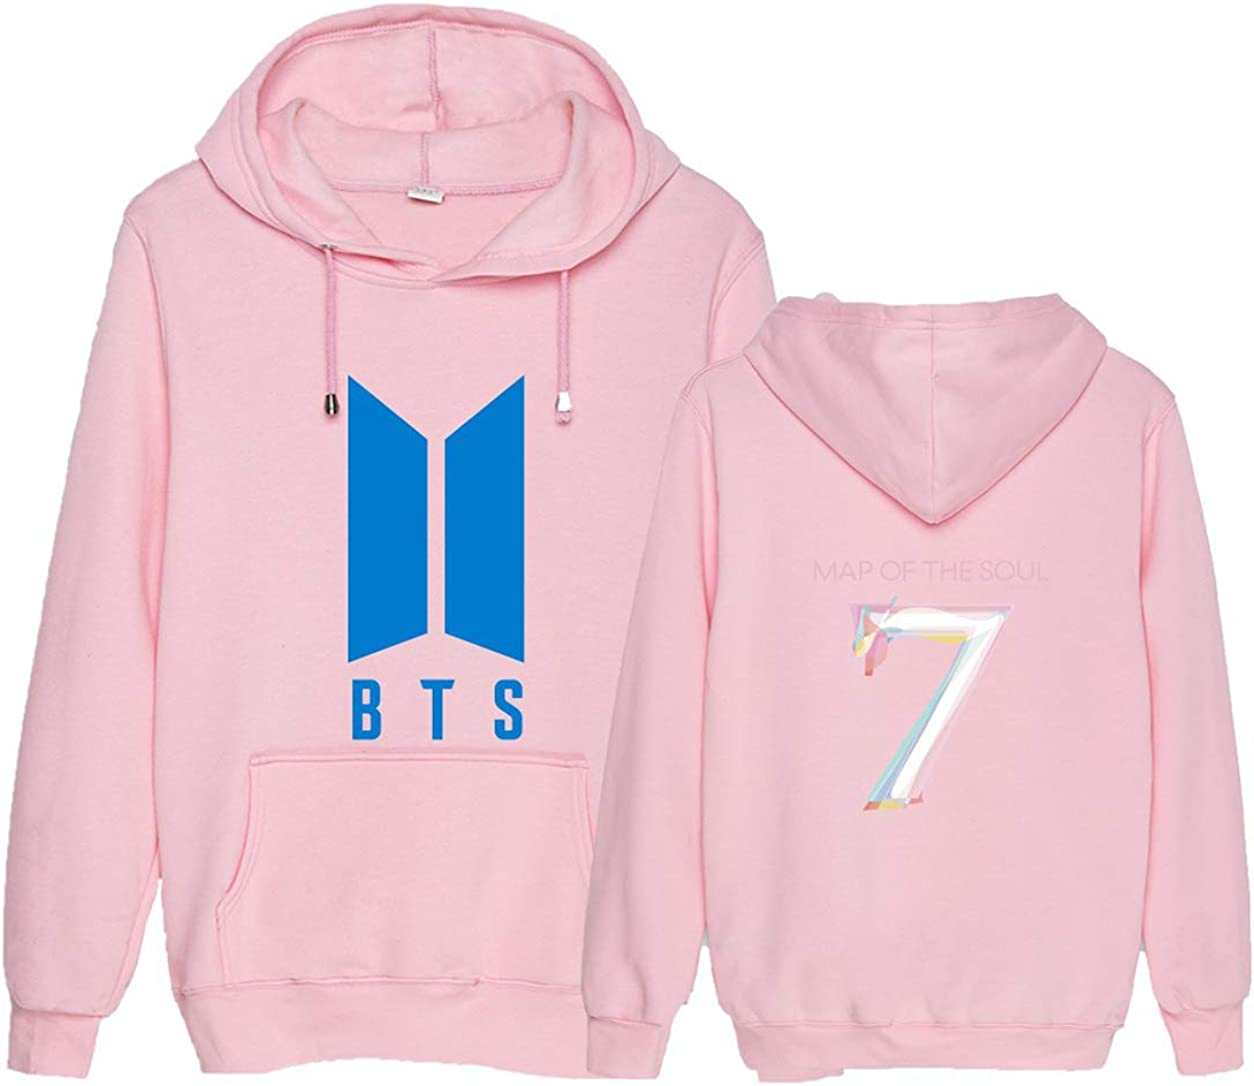 ACEFAST INC Kpop BTS Hoodie Map of The Soul 7 Sweatshirt V Jimin Suga RM Jhope Jungkook Pullover Sweater